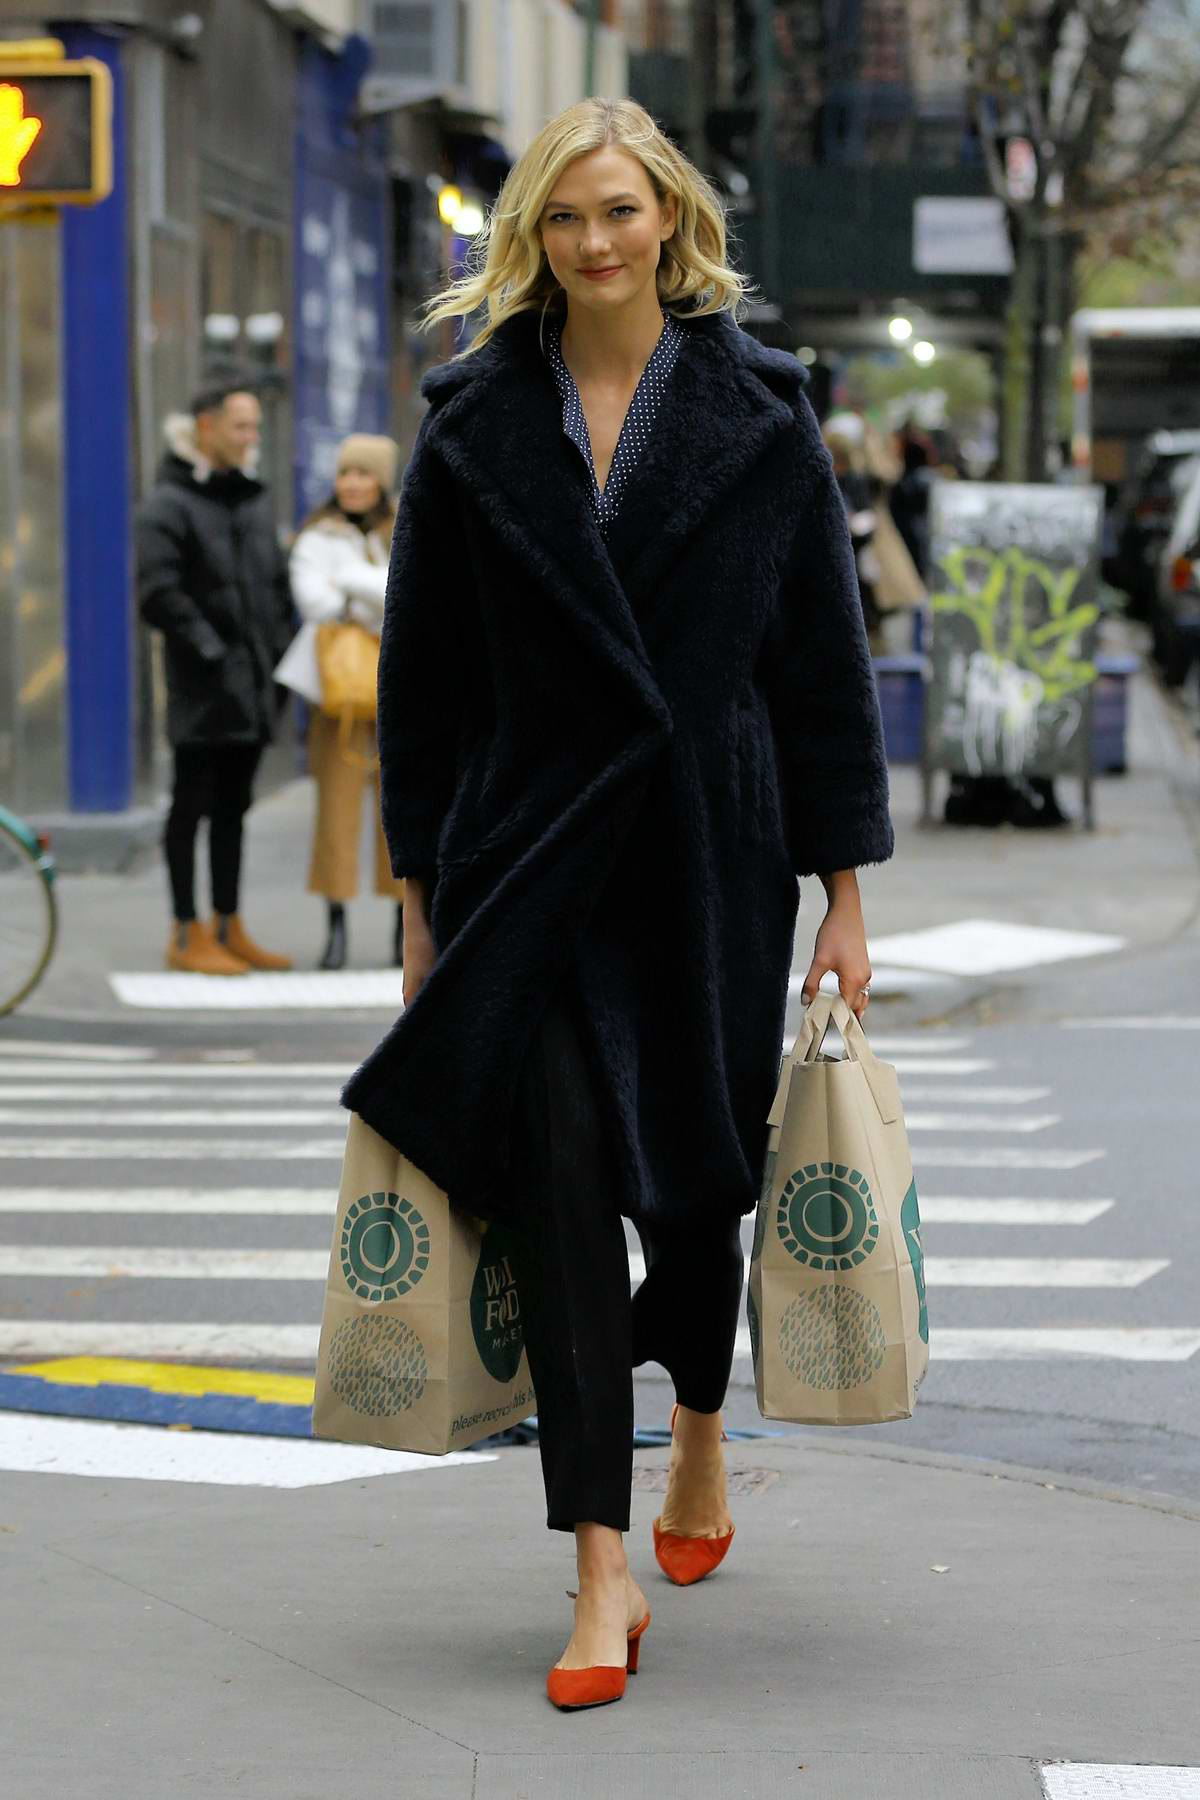 Karlie Kloss walks home carrying two bags of groceries from Whole Foods in New York City